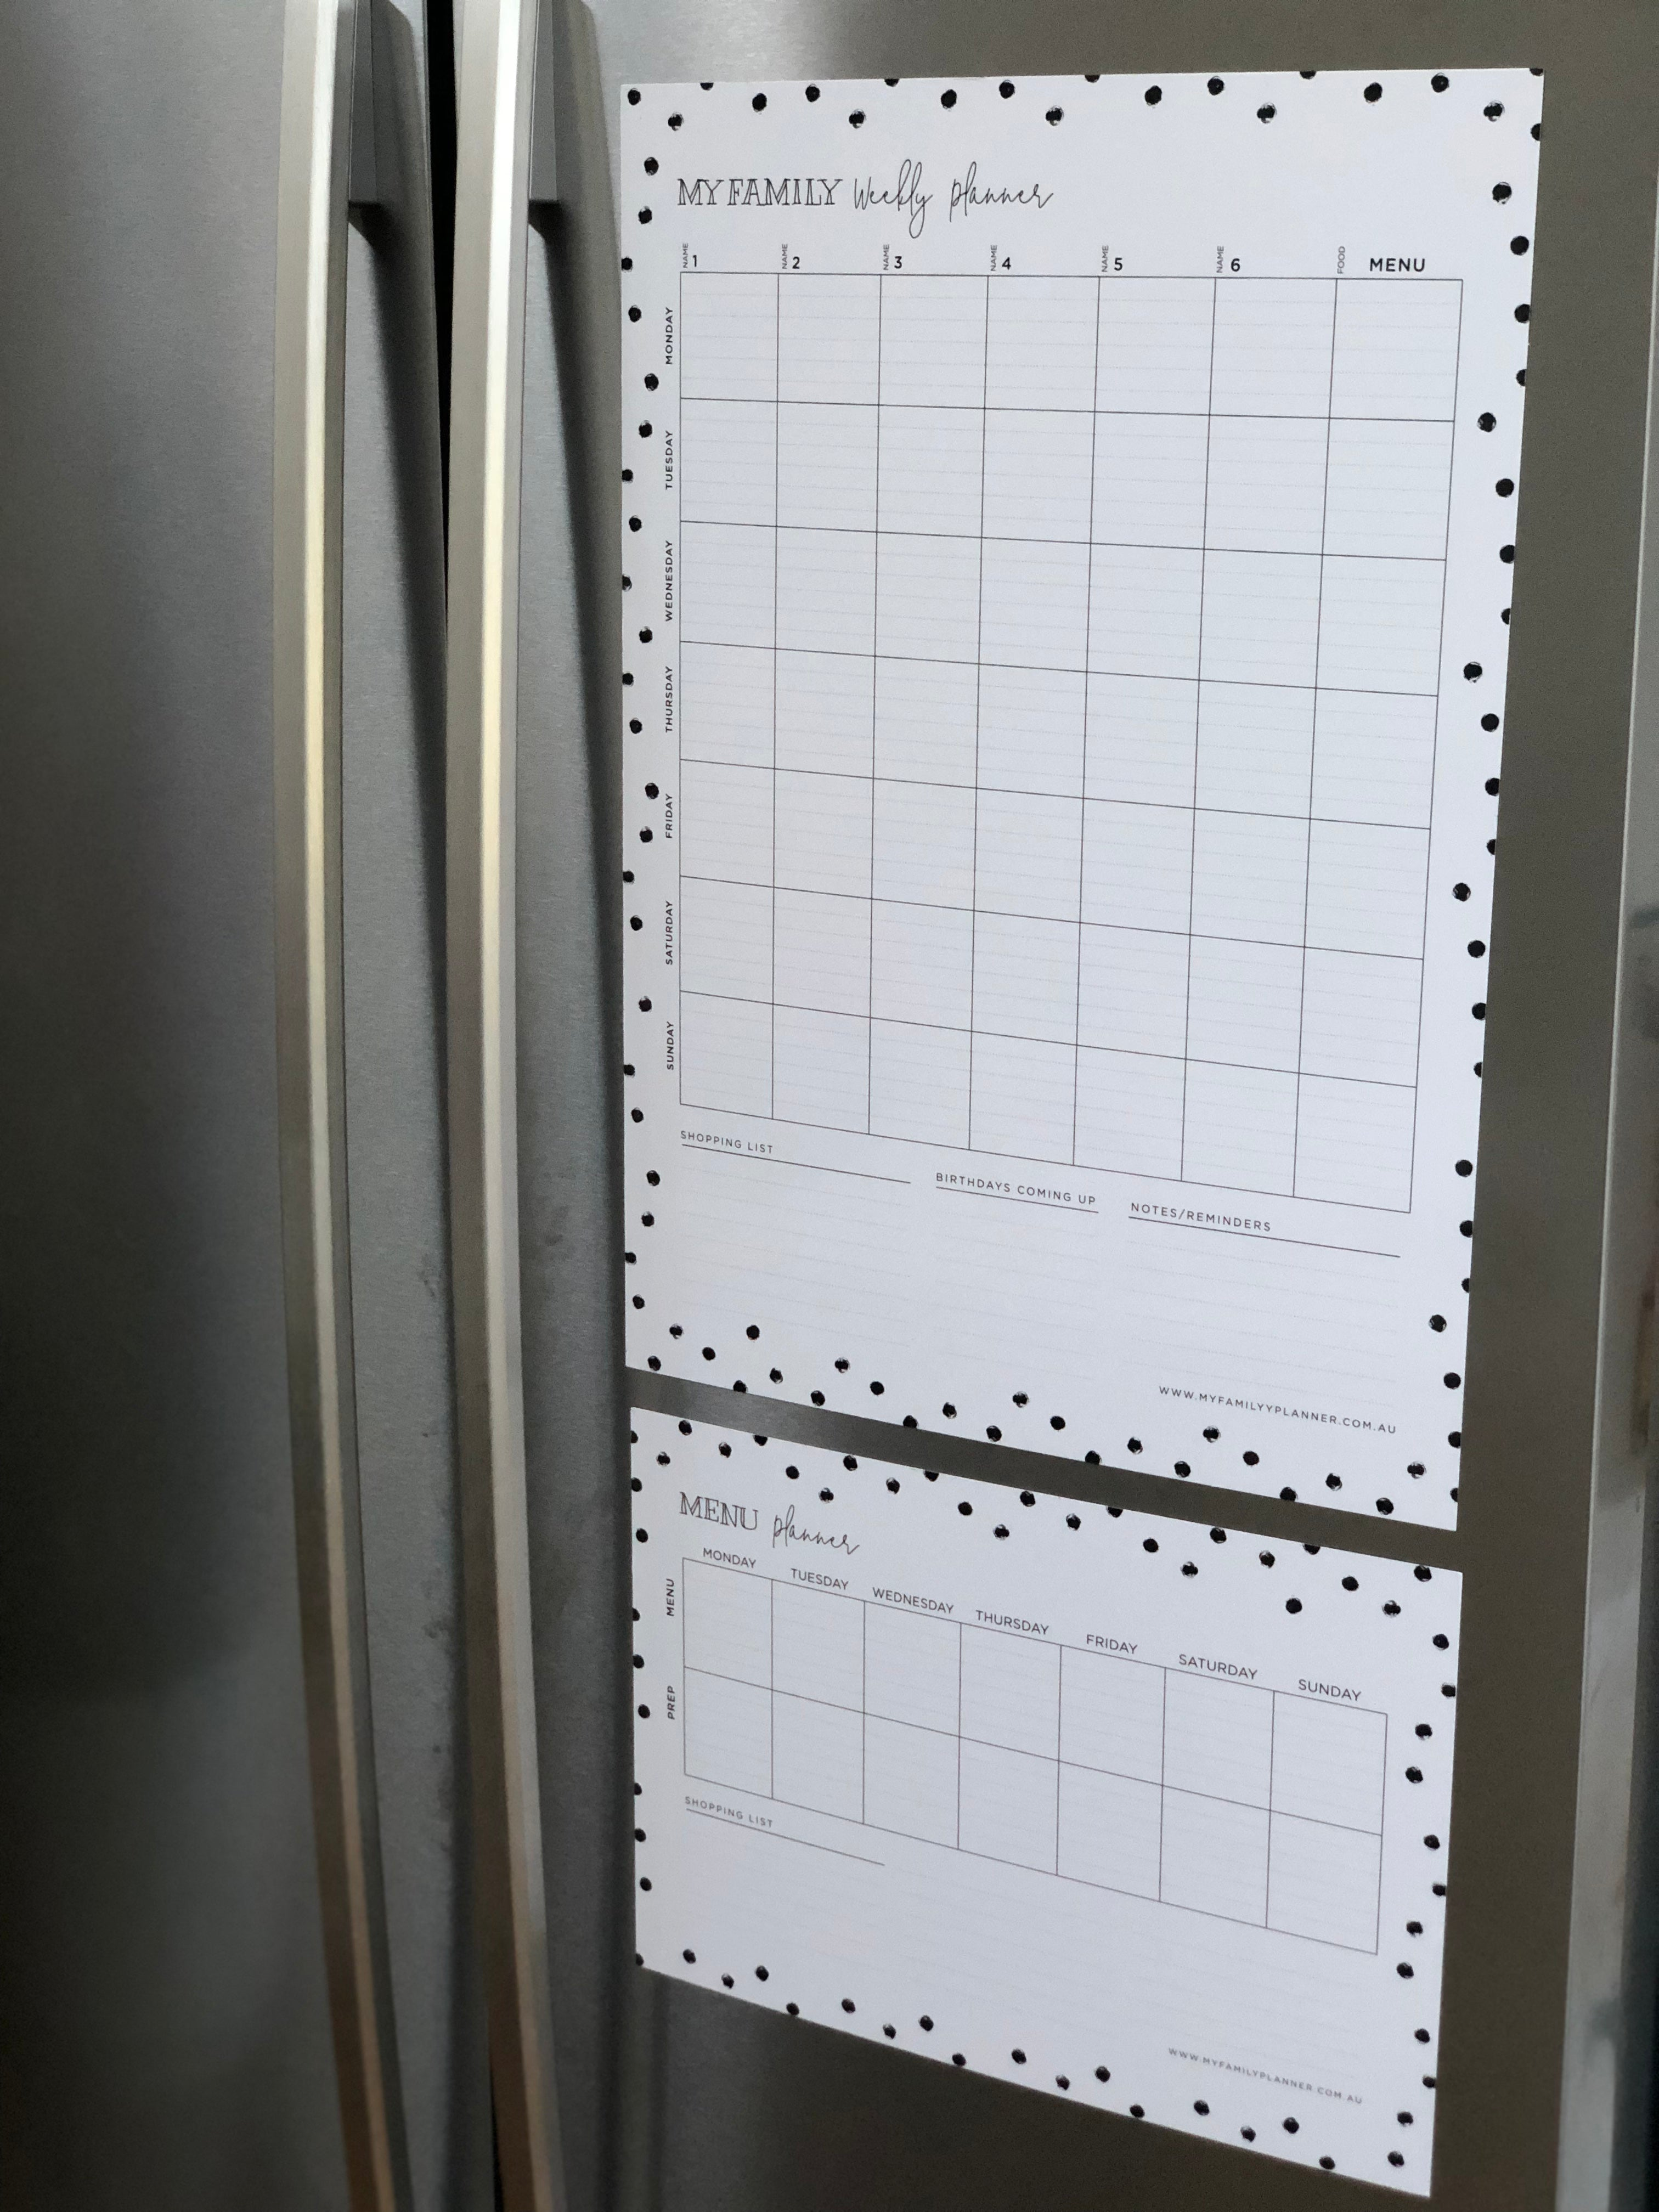 French Door Fridge Weekly Planner - Spot Design